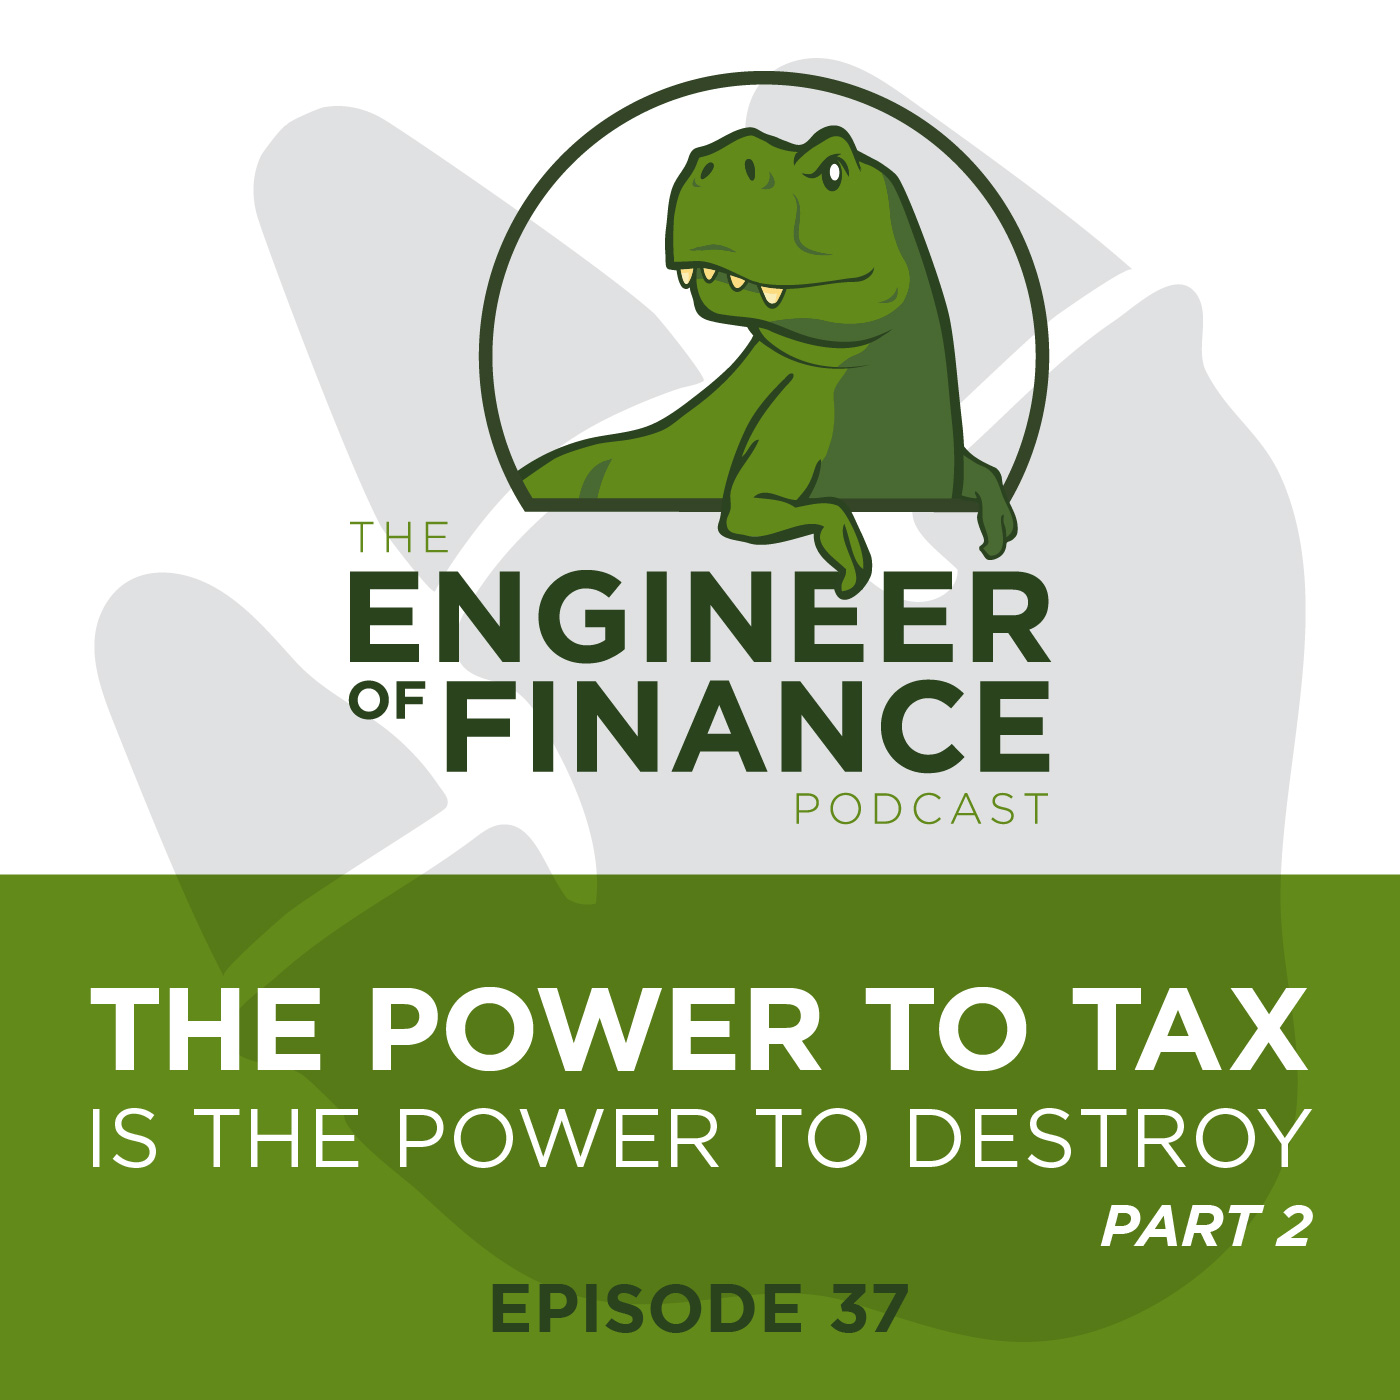 Part 2 – The Power To Tax Is The Power To Destroy – Episode 37